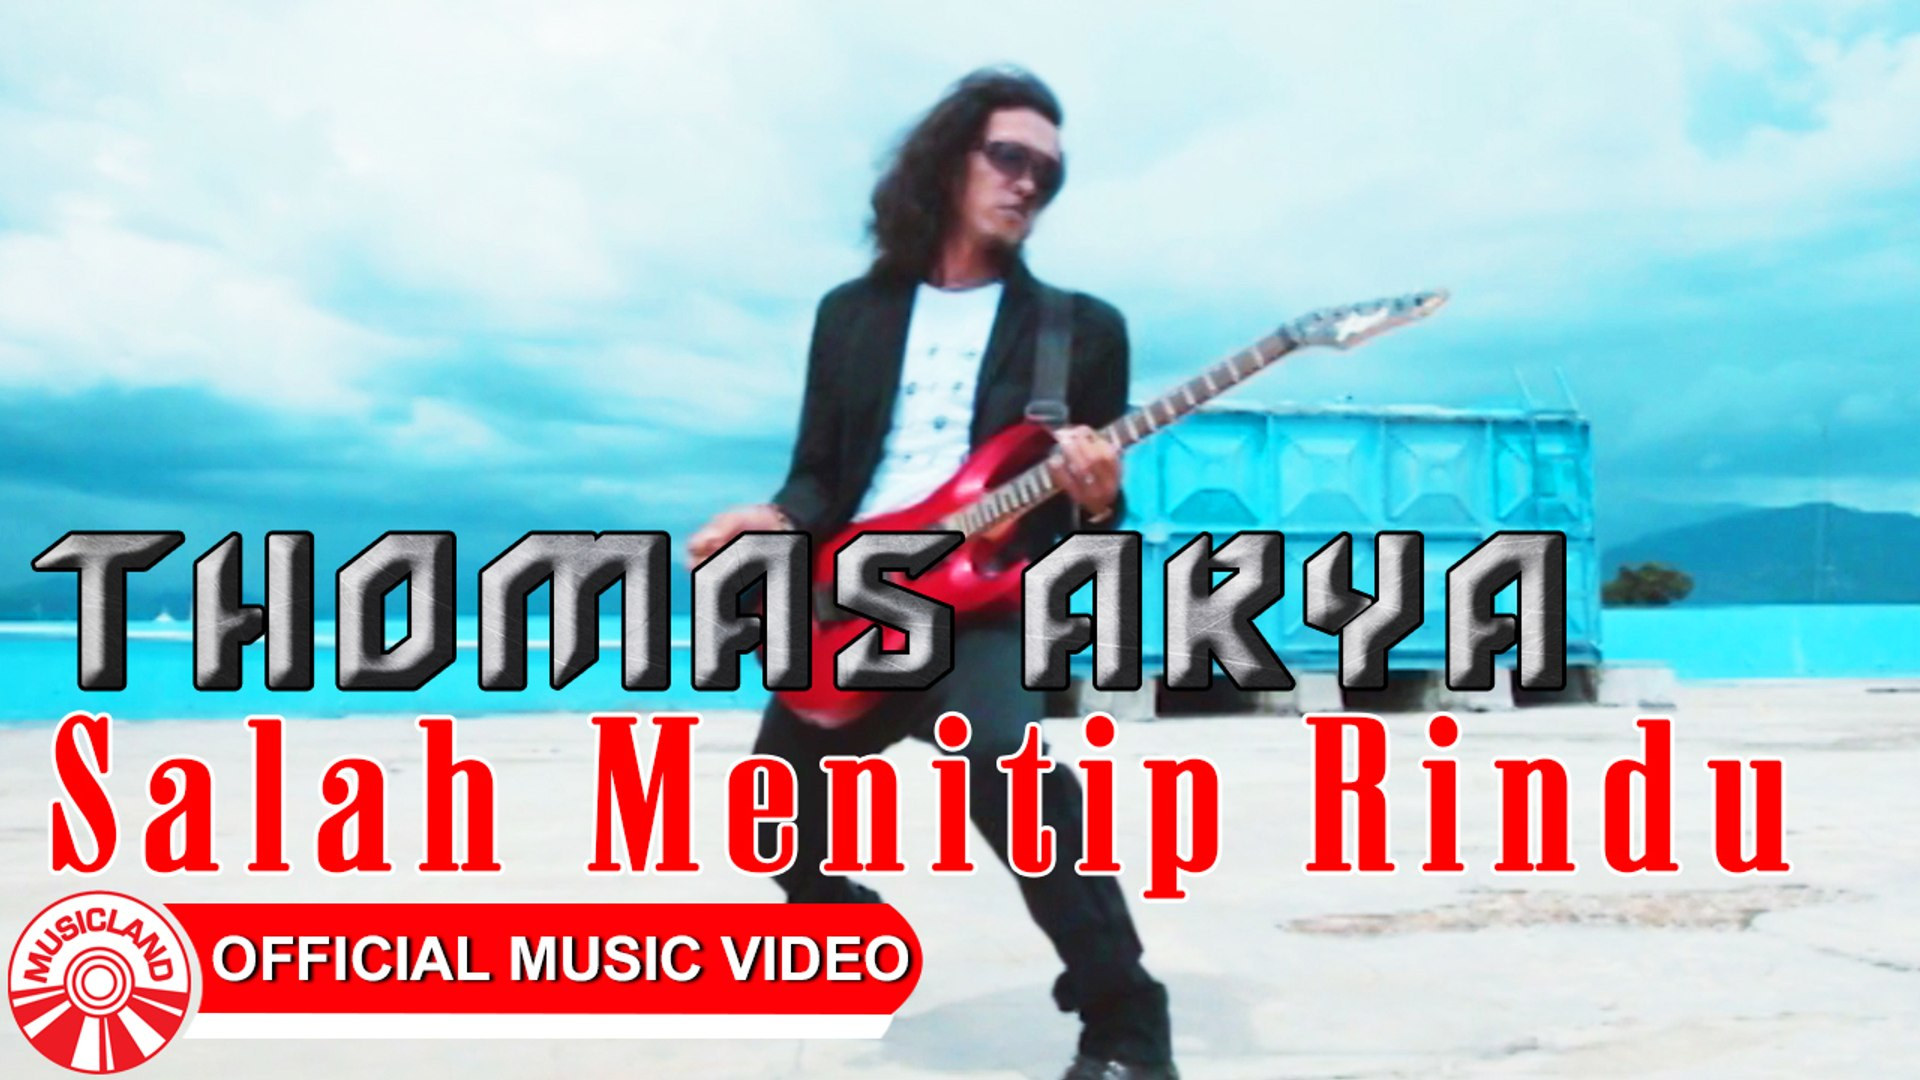 Thomas Arya - Salah Menitip Rindu [Official Music Video HD]